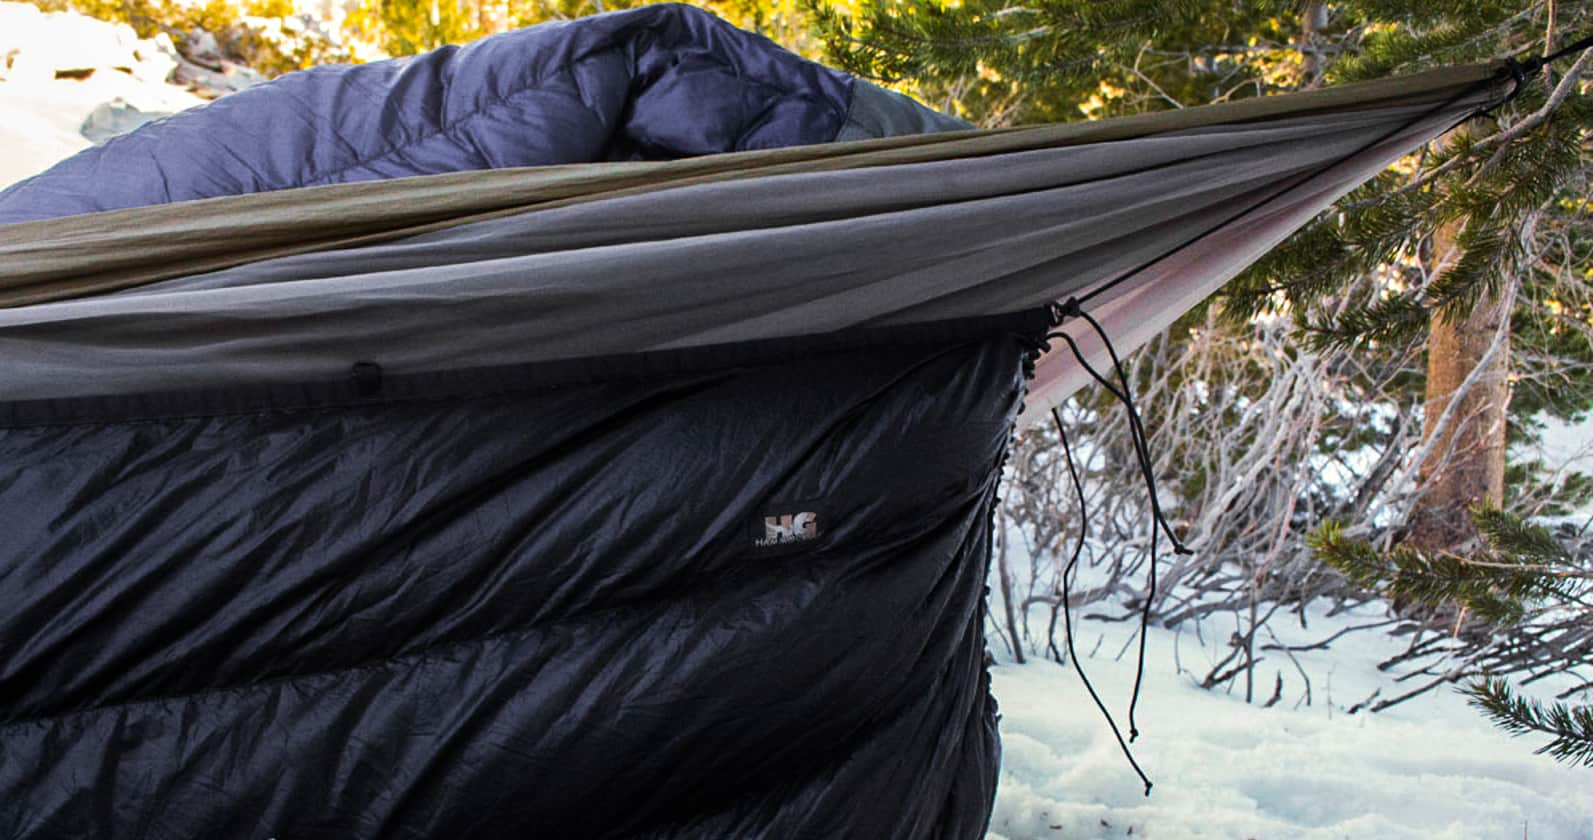 4 Clever Tricks To Stay Cozy While Hammock Camping Without An Underquilt